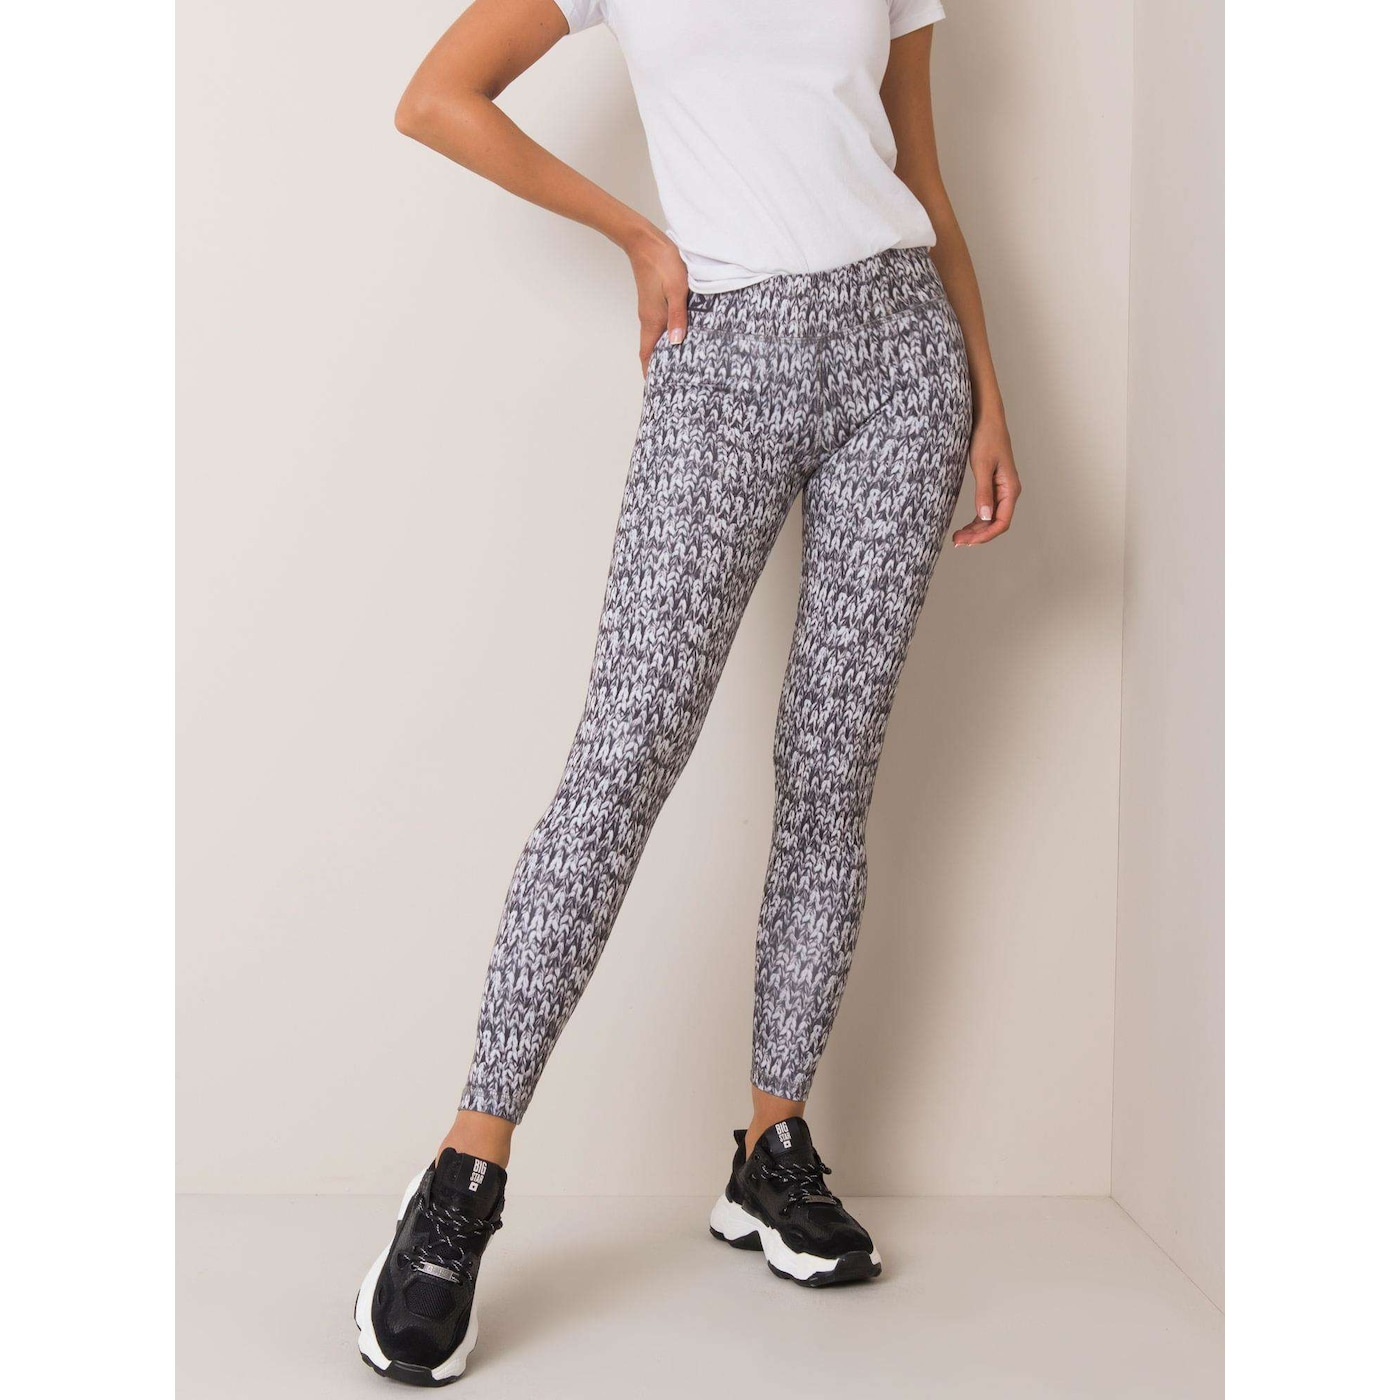 Black and white leggings with a print